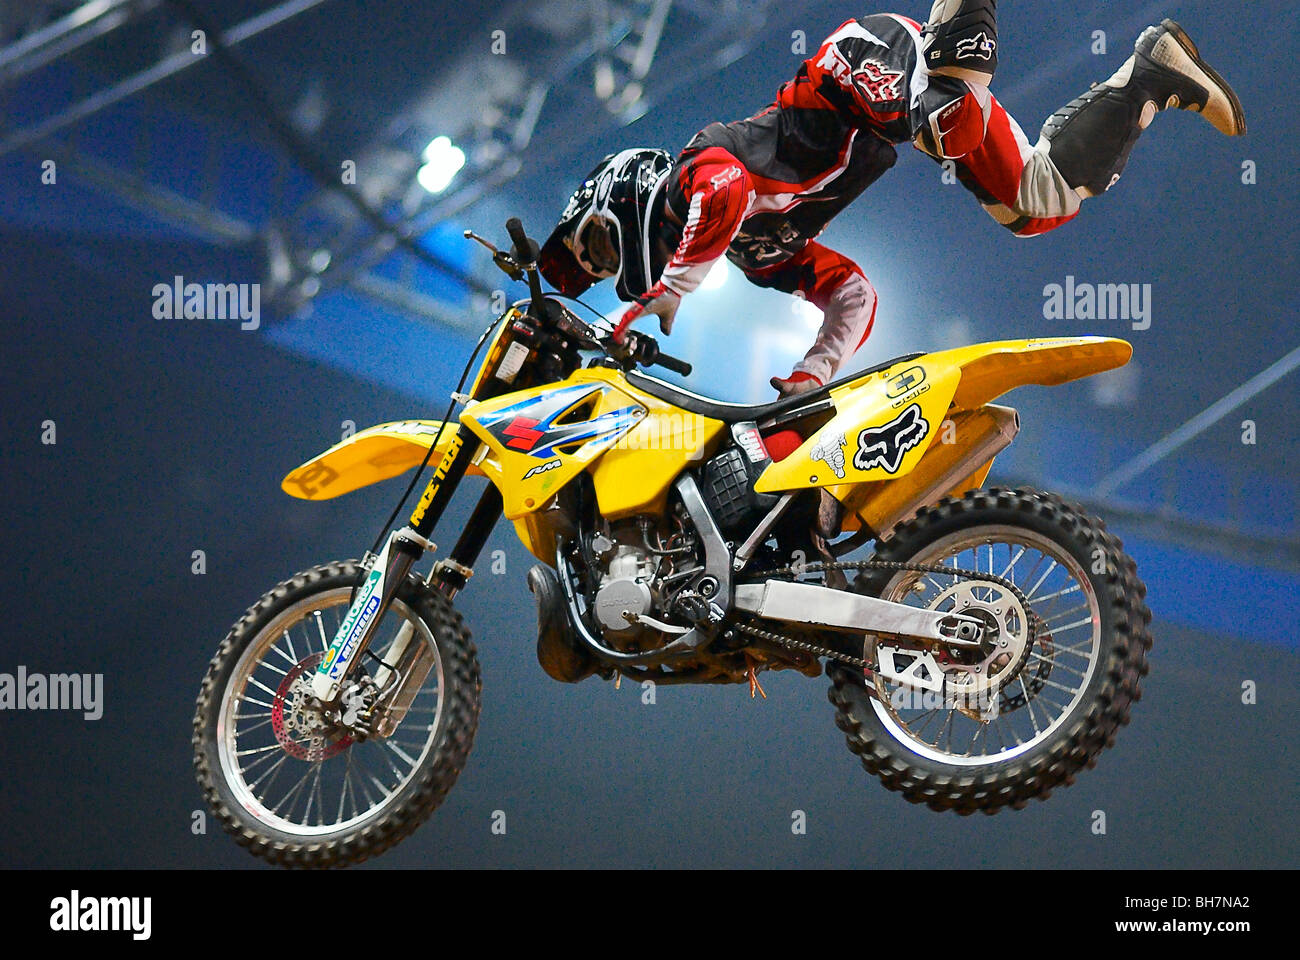 Freestyle Motorcycle Jumping. Fragment of motoshow - Stock Image